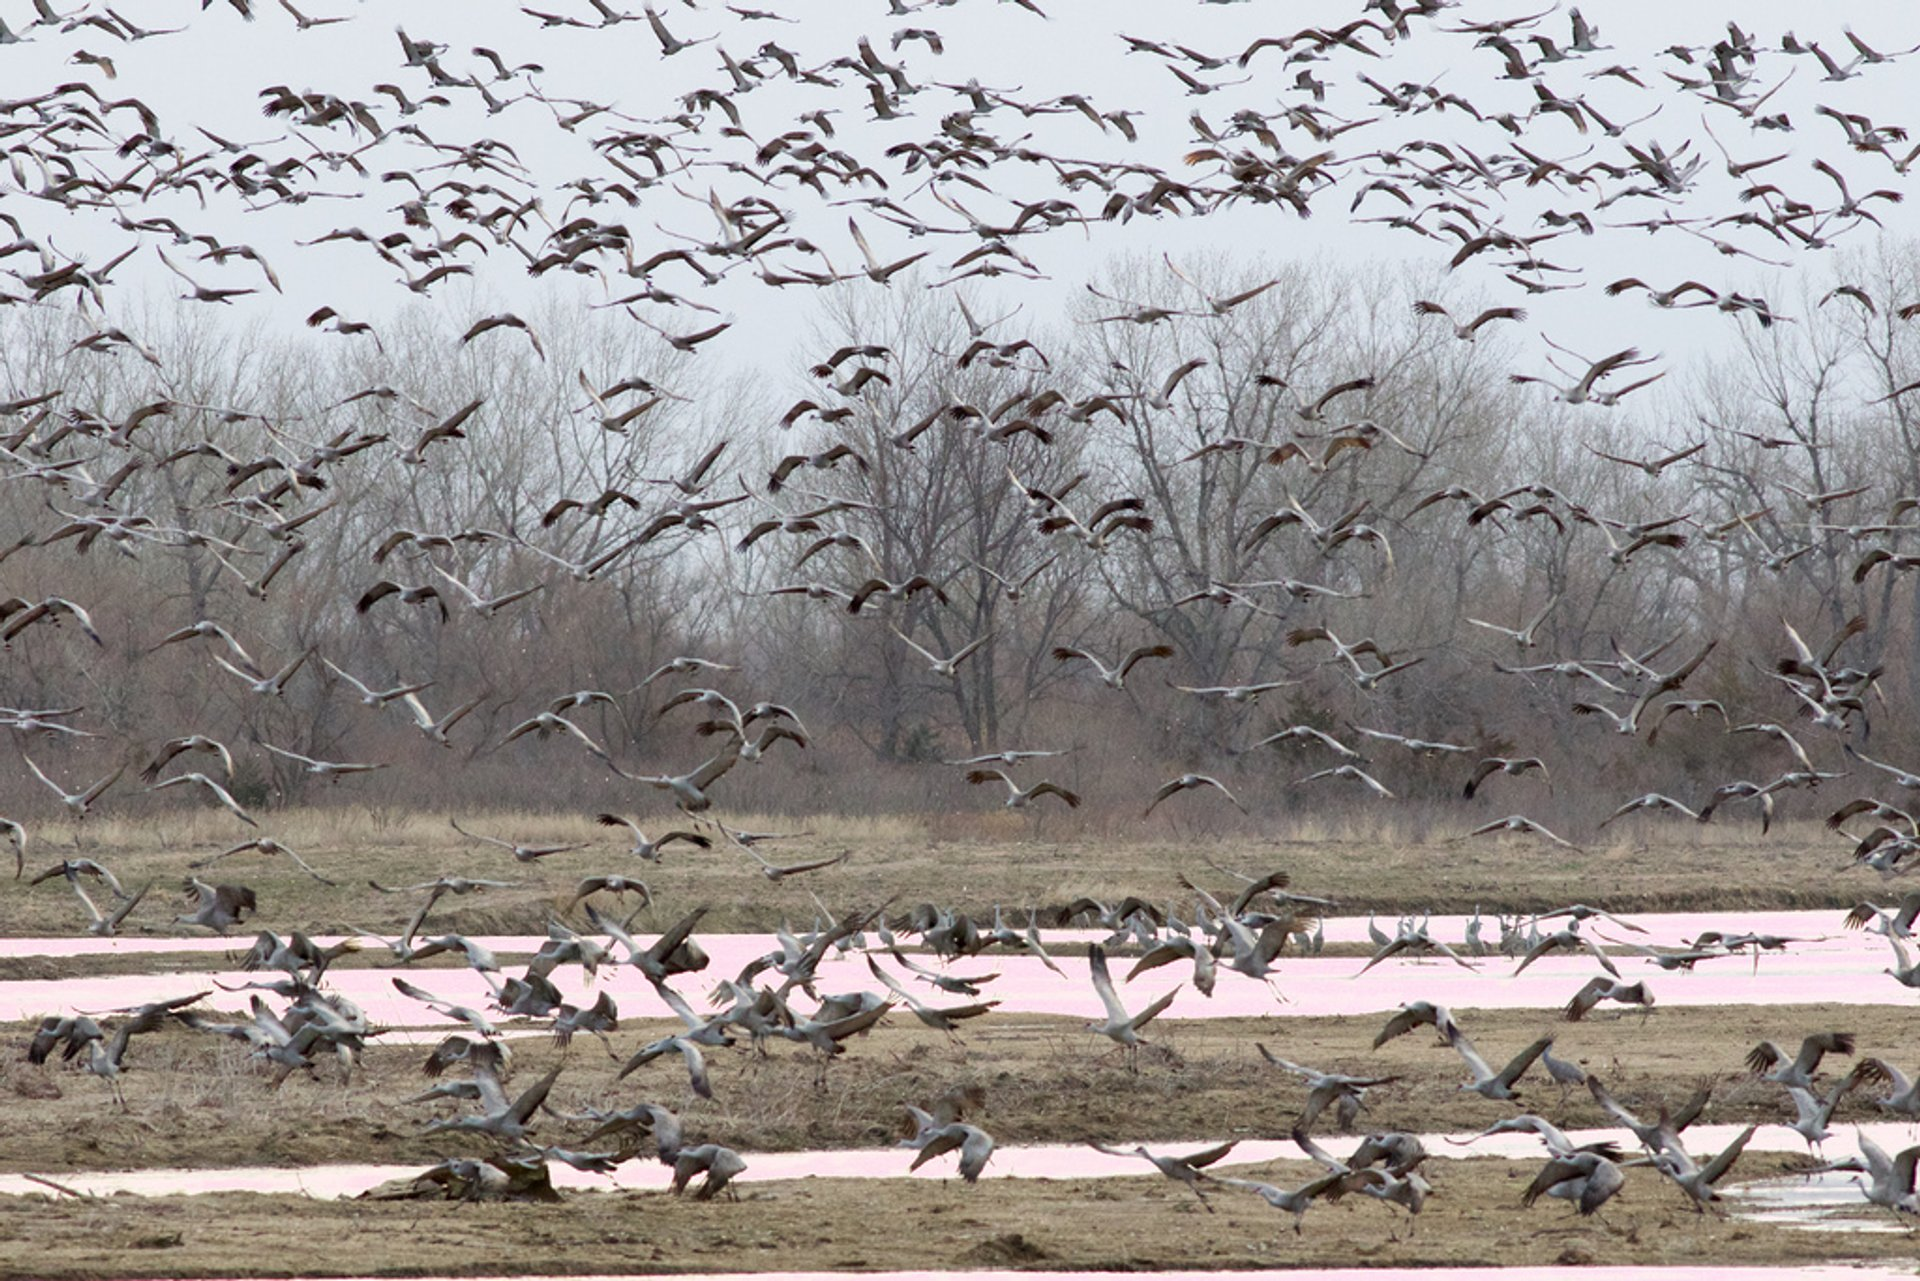 Sandhill Crane Migration in Midwest 2020 - Best Time